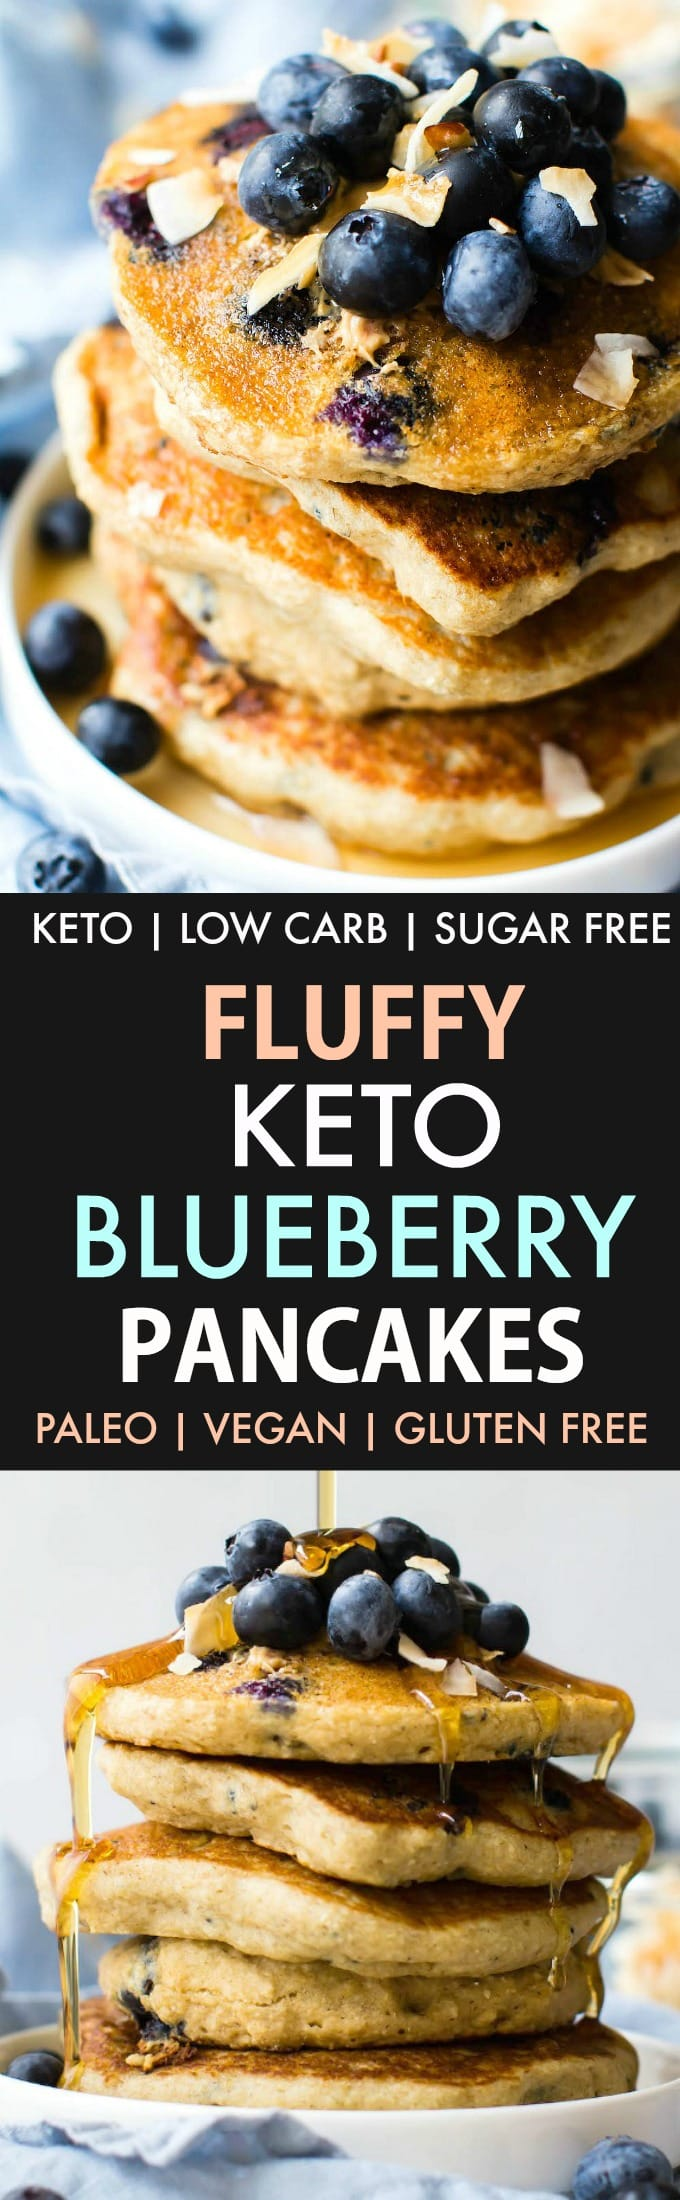 Fluffy Low Carb Keto Blueberry Pancakes (Paleo, Vegan, Flourless)- Thick and fluffy keto paleo blueberry pancake recipe- Low carb, sugar free and perfect for breakfast! #ketobreakfast #healthybreakfast #paleopancakes #blueberrypancakes #veganpancakes | Recipe on thebigmansworld.com